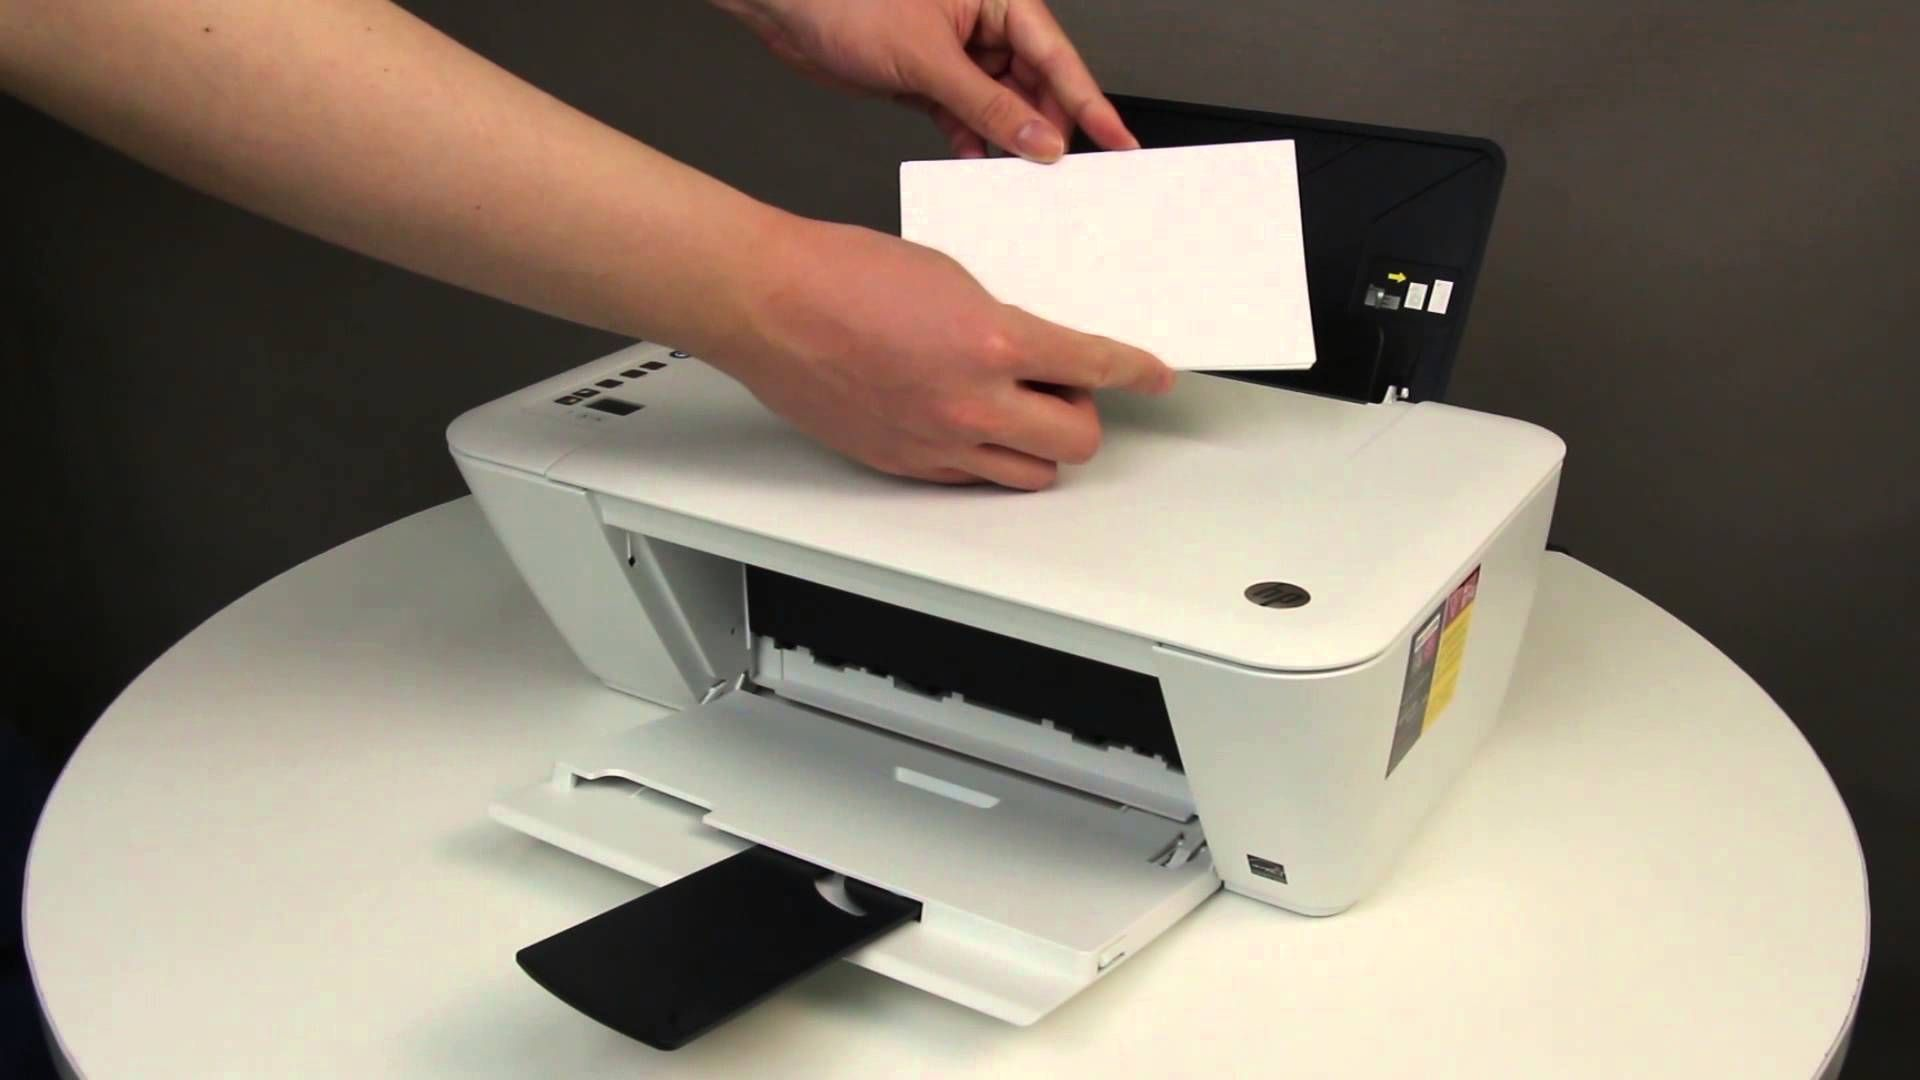 [FIXED] The Printer Out of Paper Error Problem Issue (100